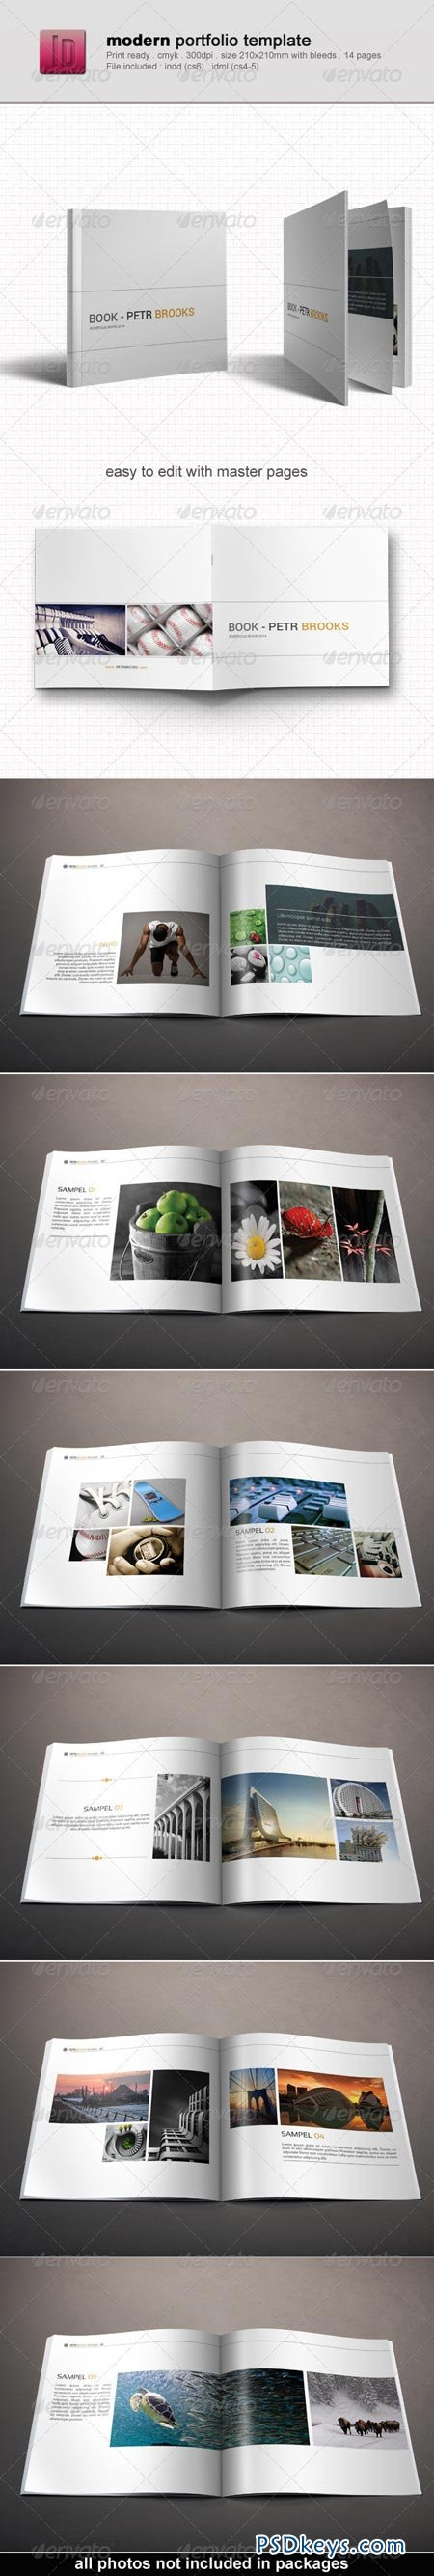 Modern Portfolio Template 6592214 » Free Download Photoshop Vector ...